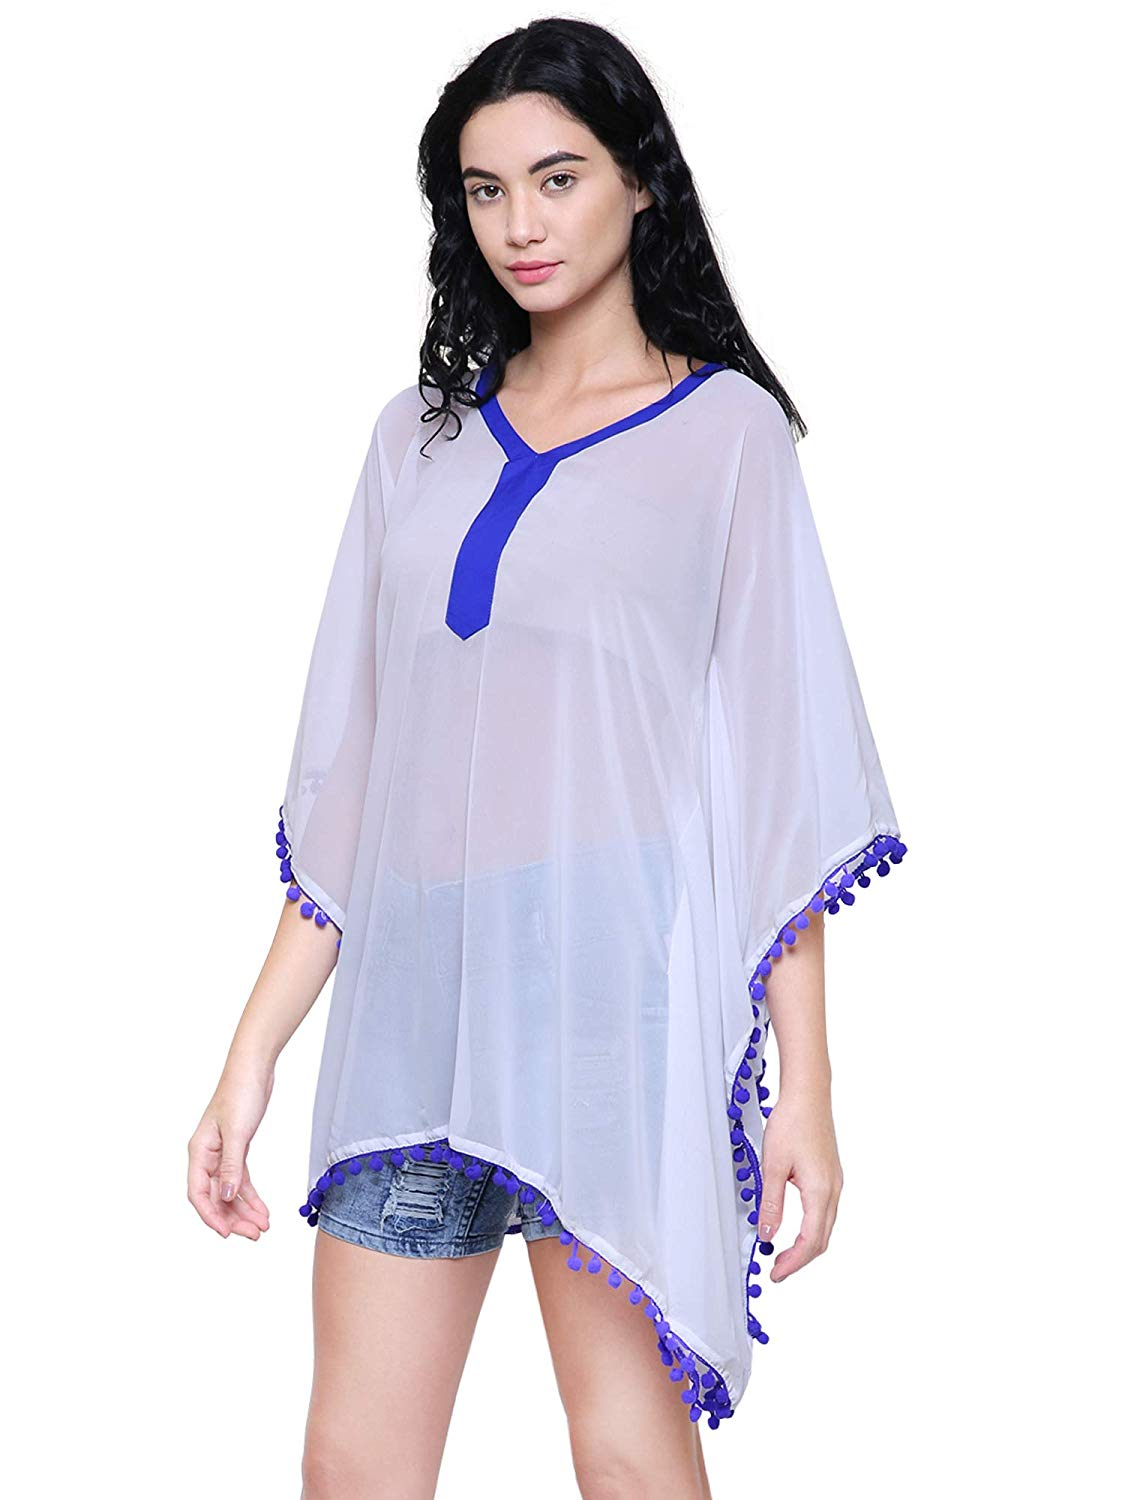 Kaftan Top with Pom Pom Lace for Women - BohoEntice